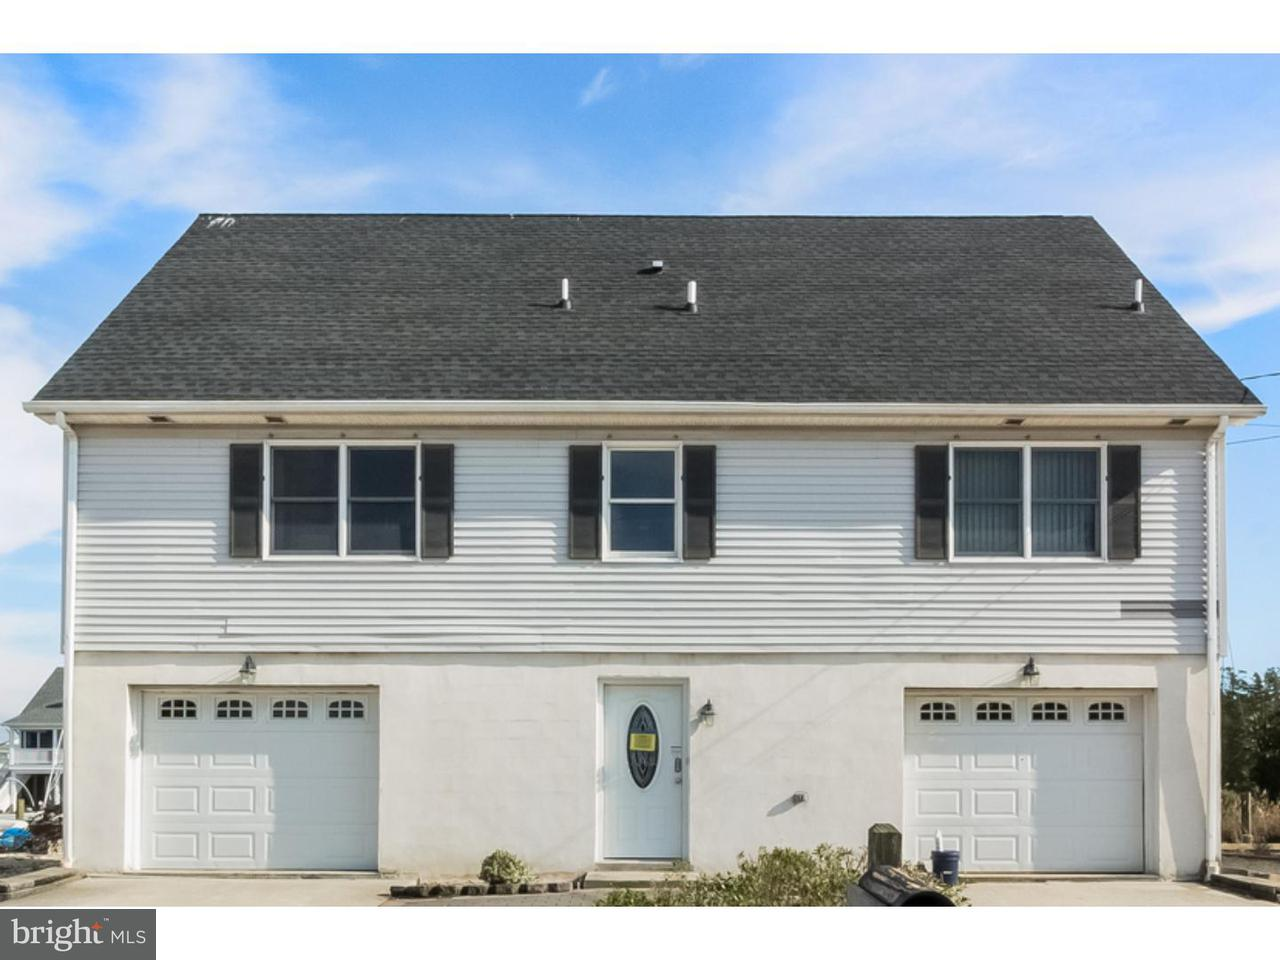 Single Family Home for Sale at 1209 KOA Drive Forked River, New Jersey 08731 United States